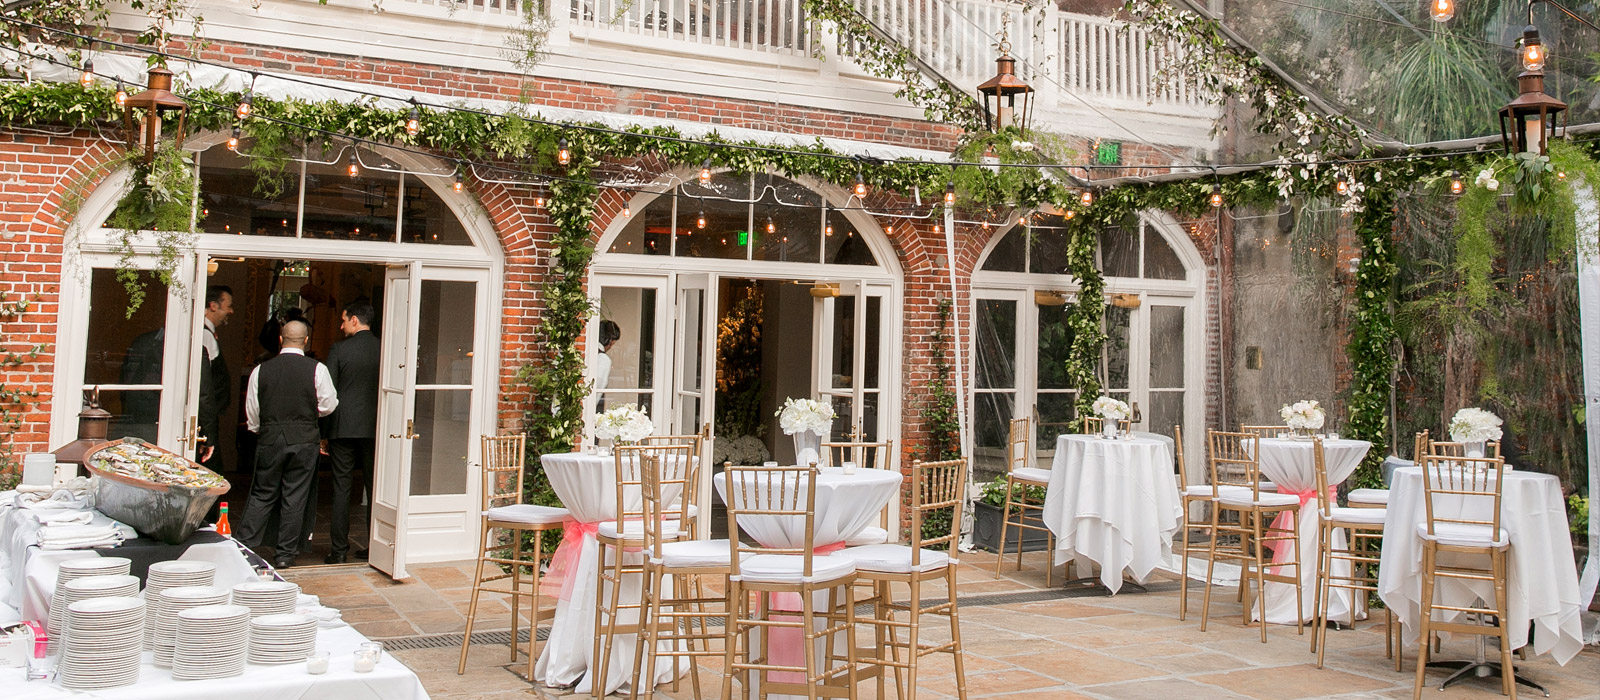 The Courtyard | Brennanu0027s Restaurant : A New Orleans Tradition Since 1946